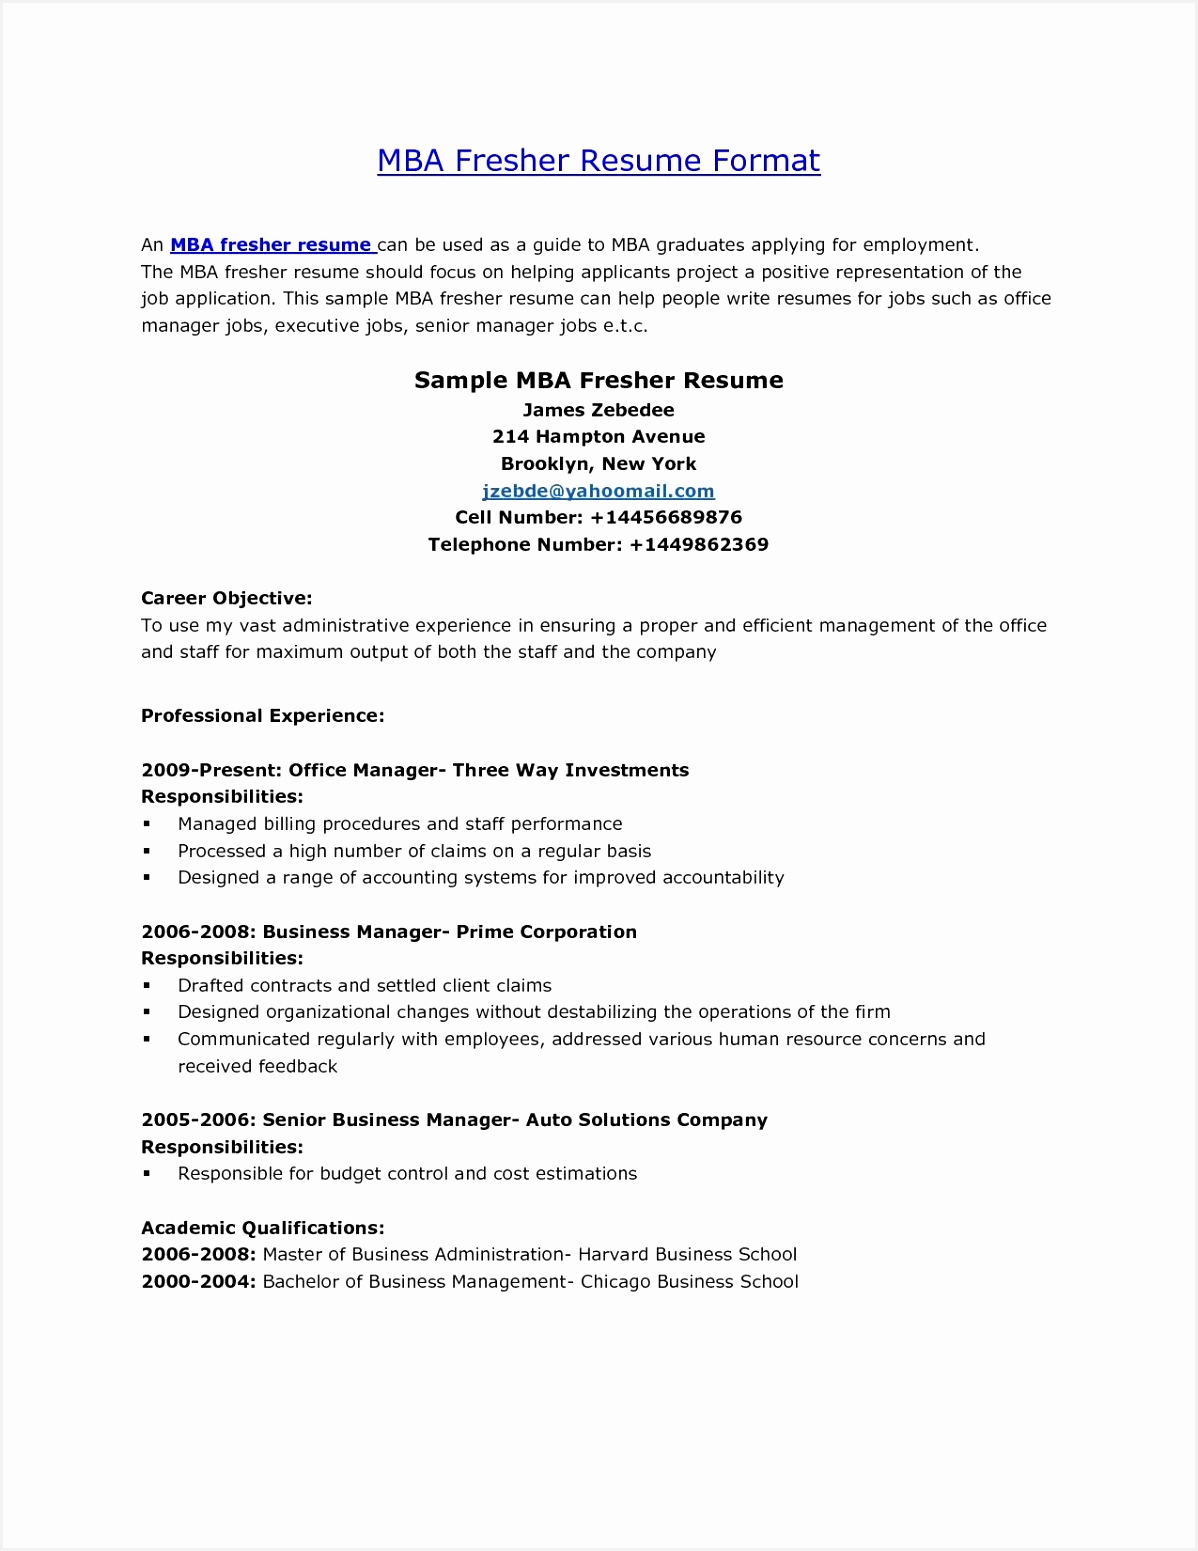 Contract Stress Engineer Sample Resume H7ght Luxury Awesome Resume for Tele Engineer Fresher Resume Ideas15511198